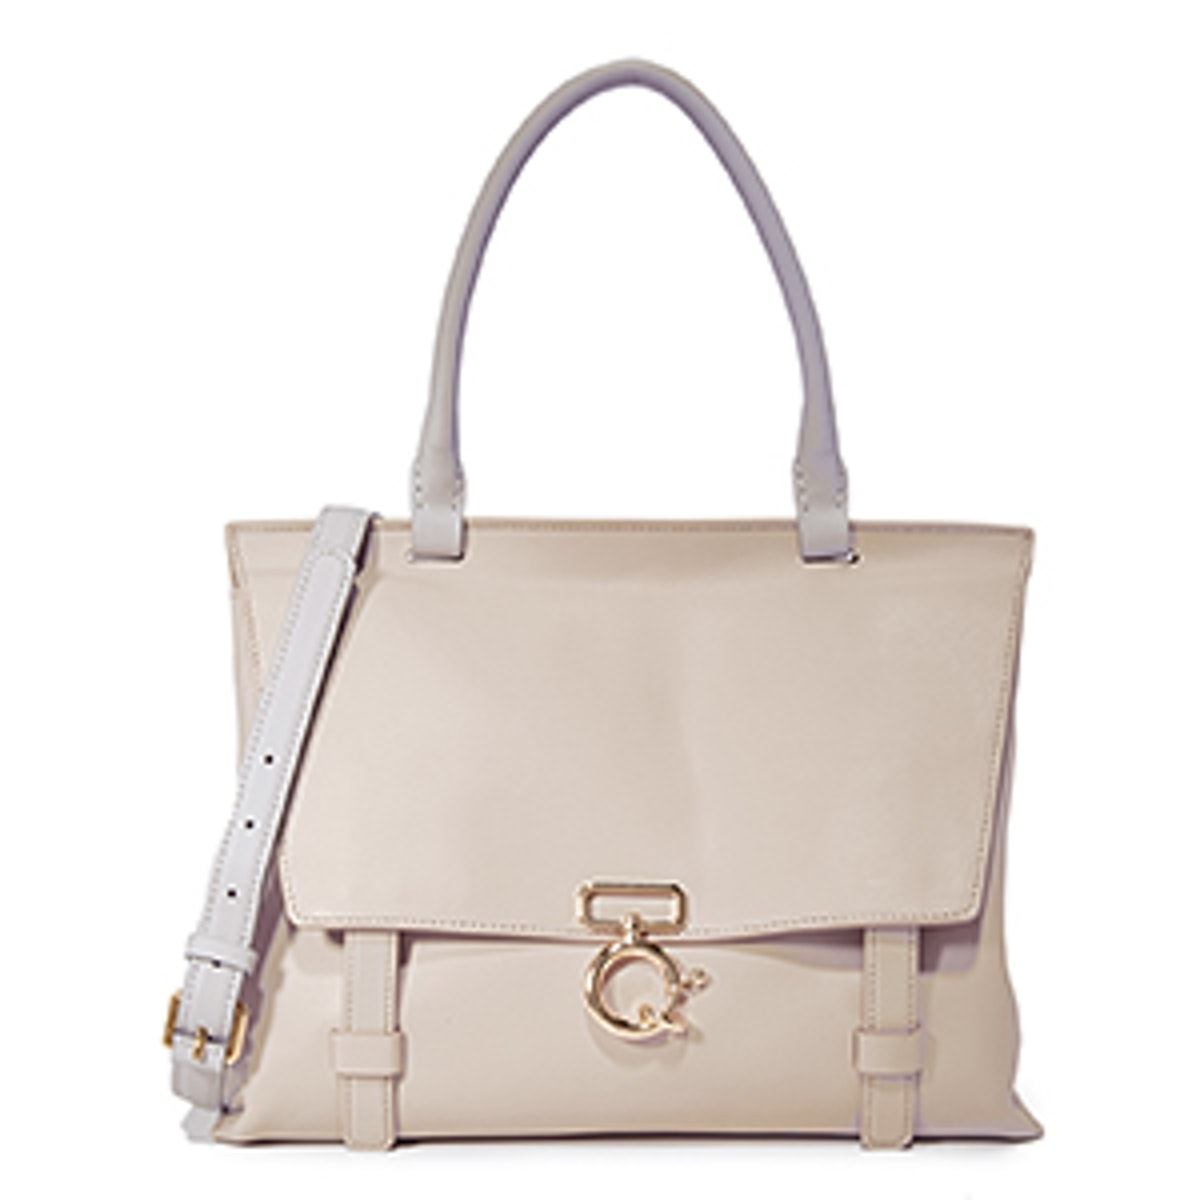 Soft Ave A Top Handle Bag